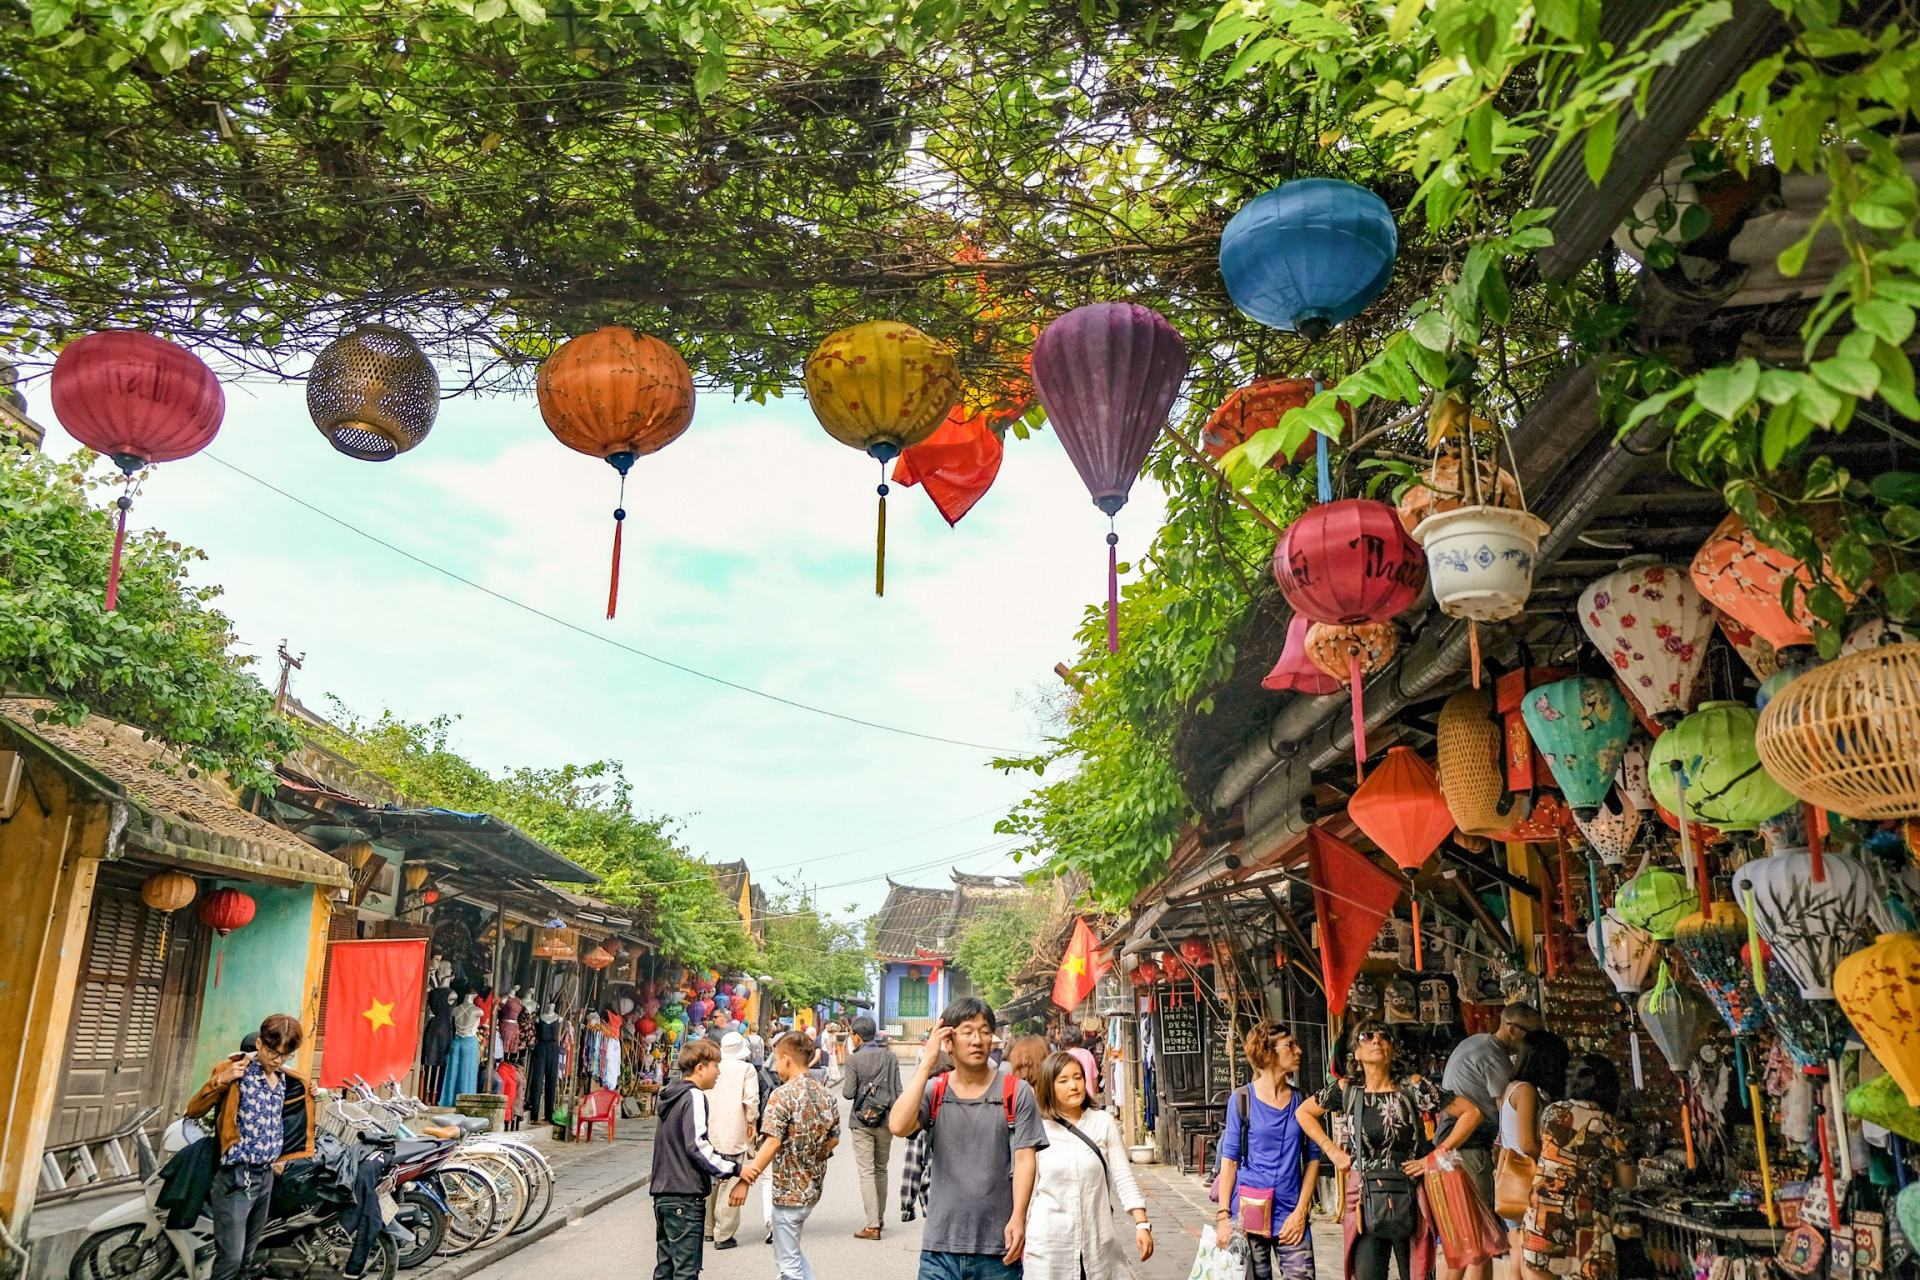 lanterns lining the streets of Hoi An Ancient Town